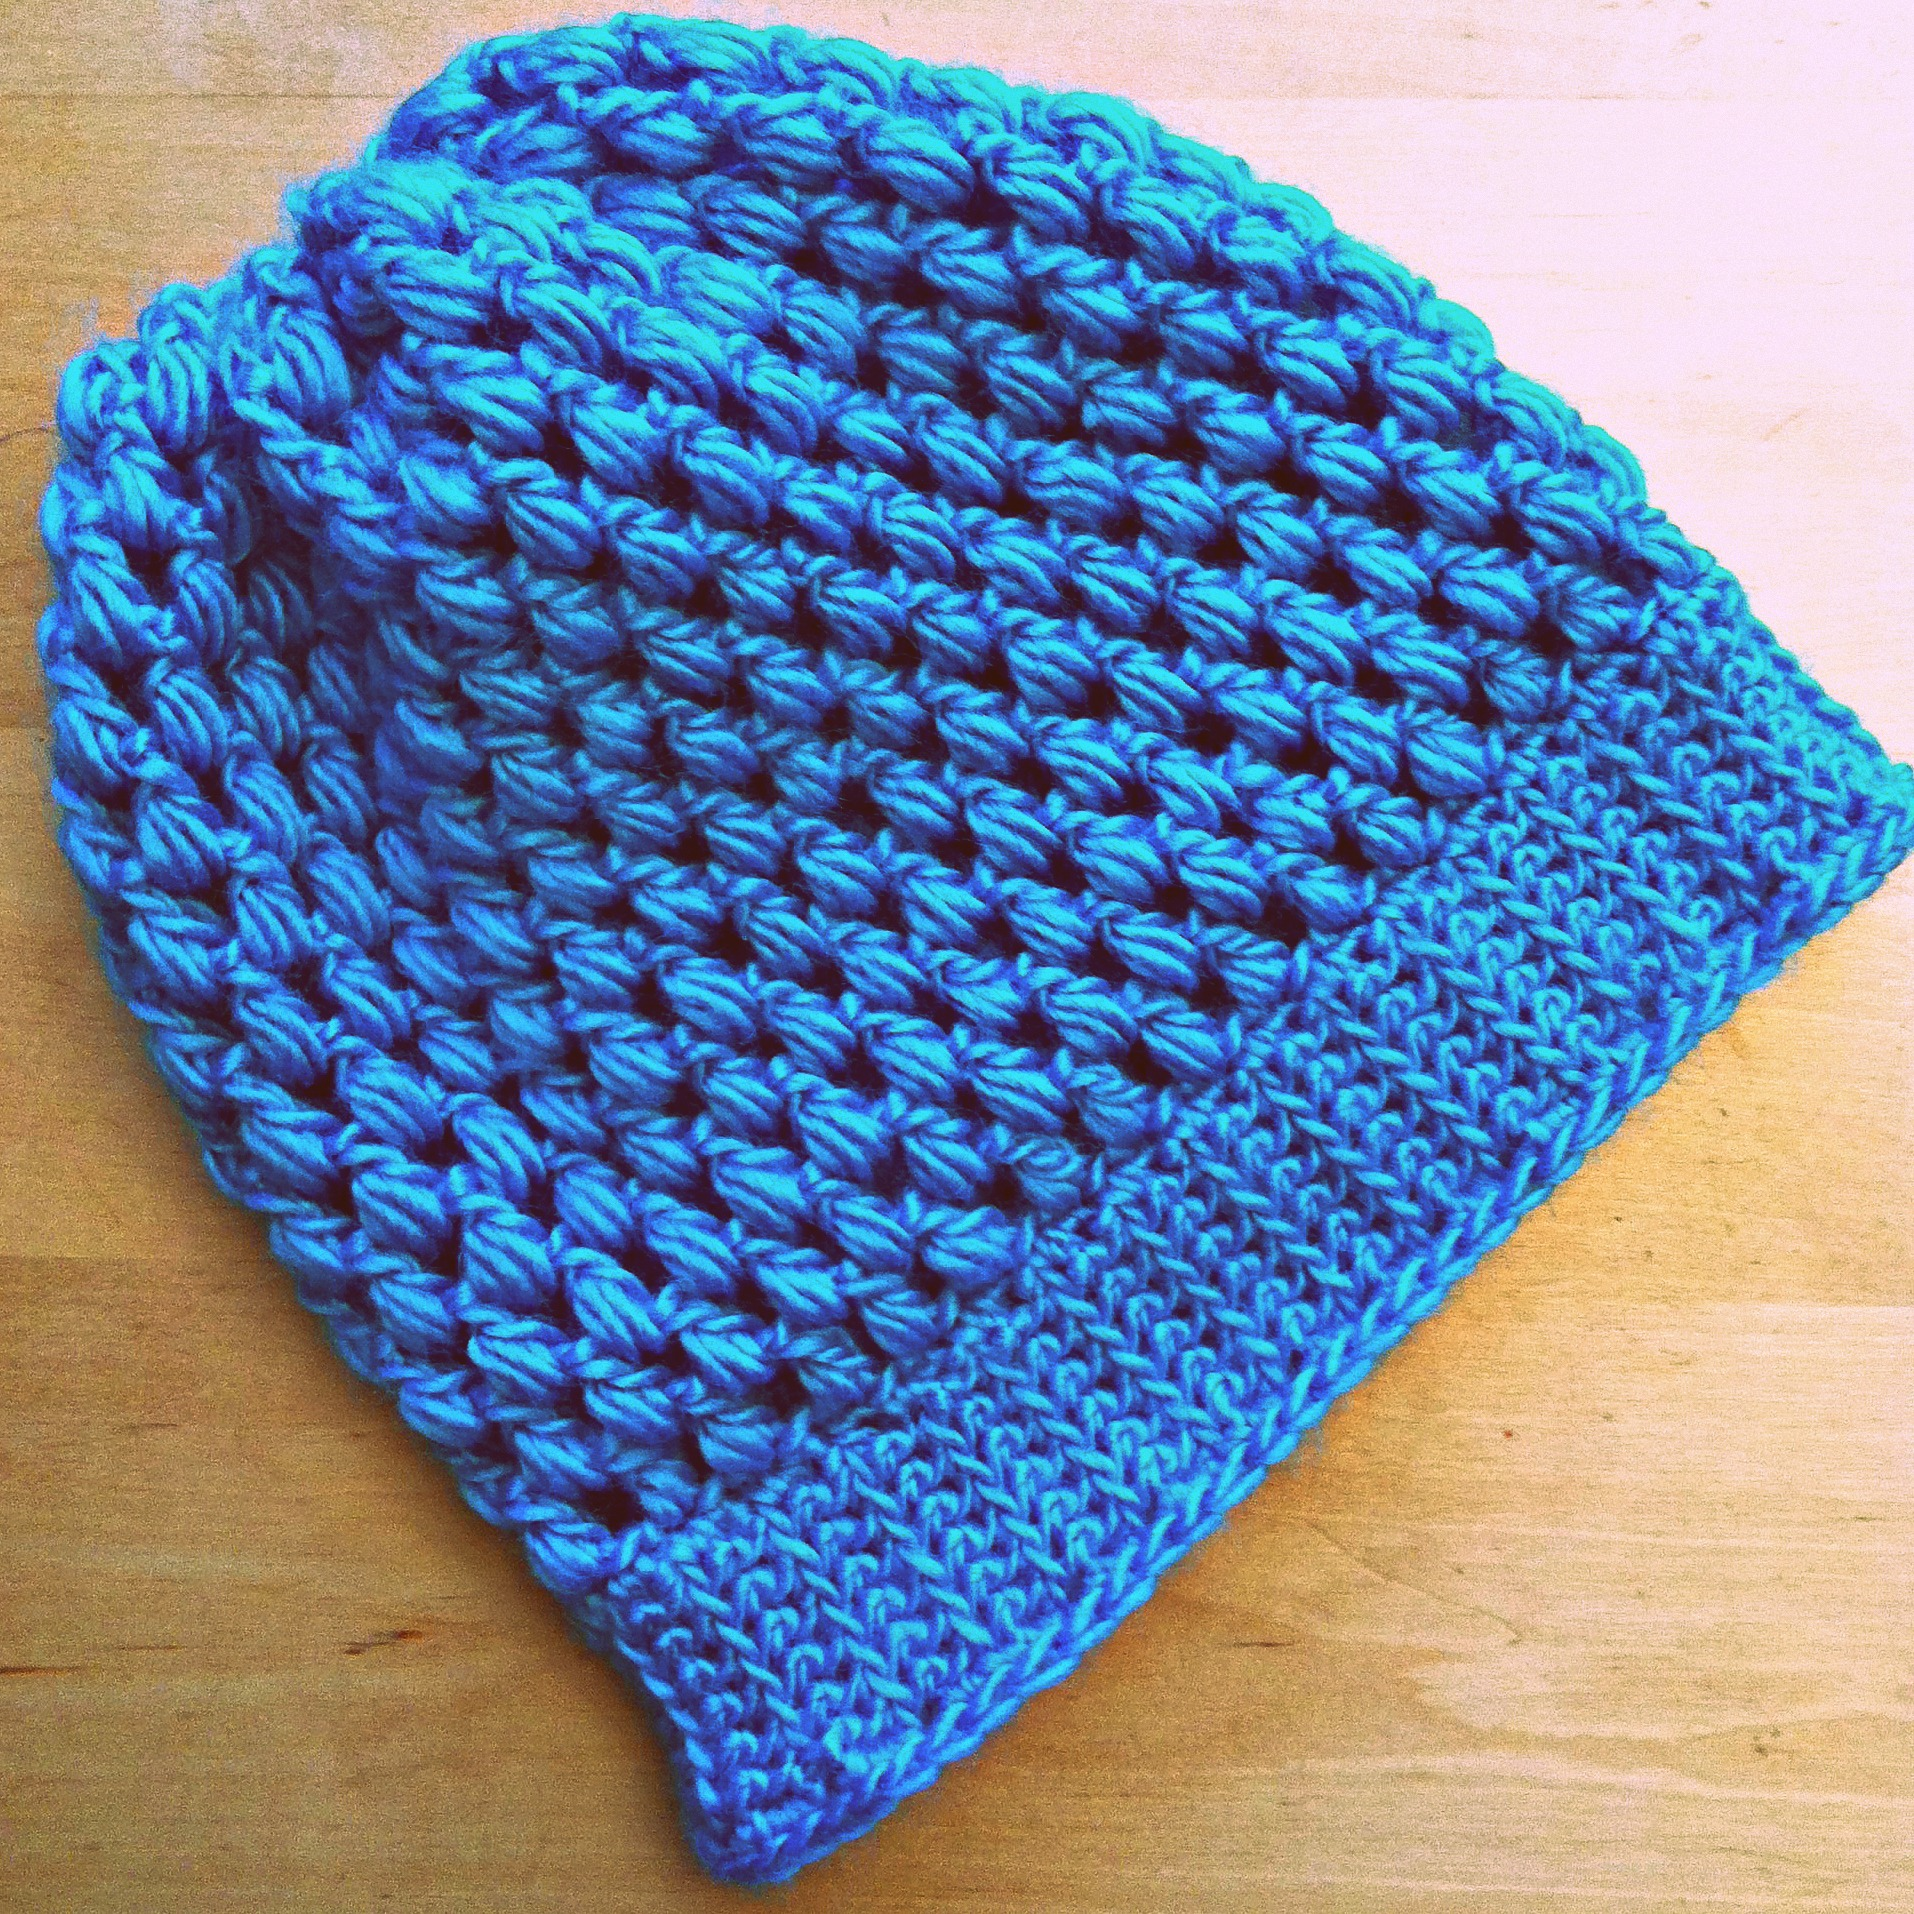 13 Loom Knit Slouchy Hat Patterns The Funky Stitch